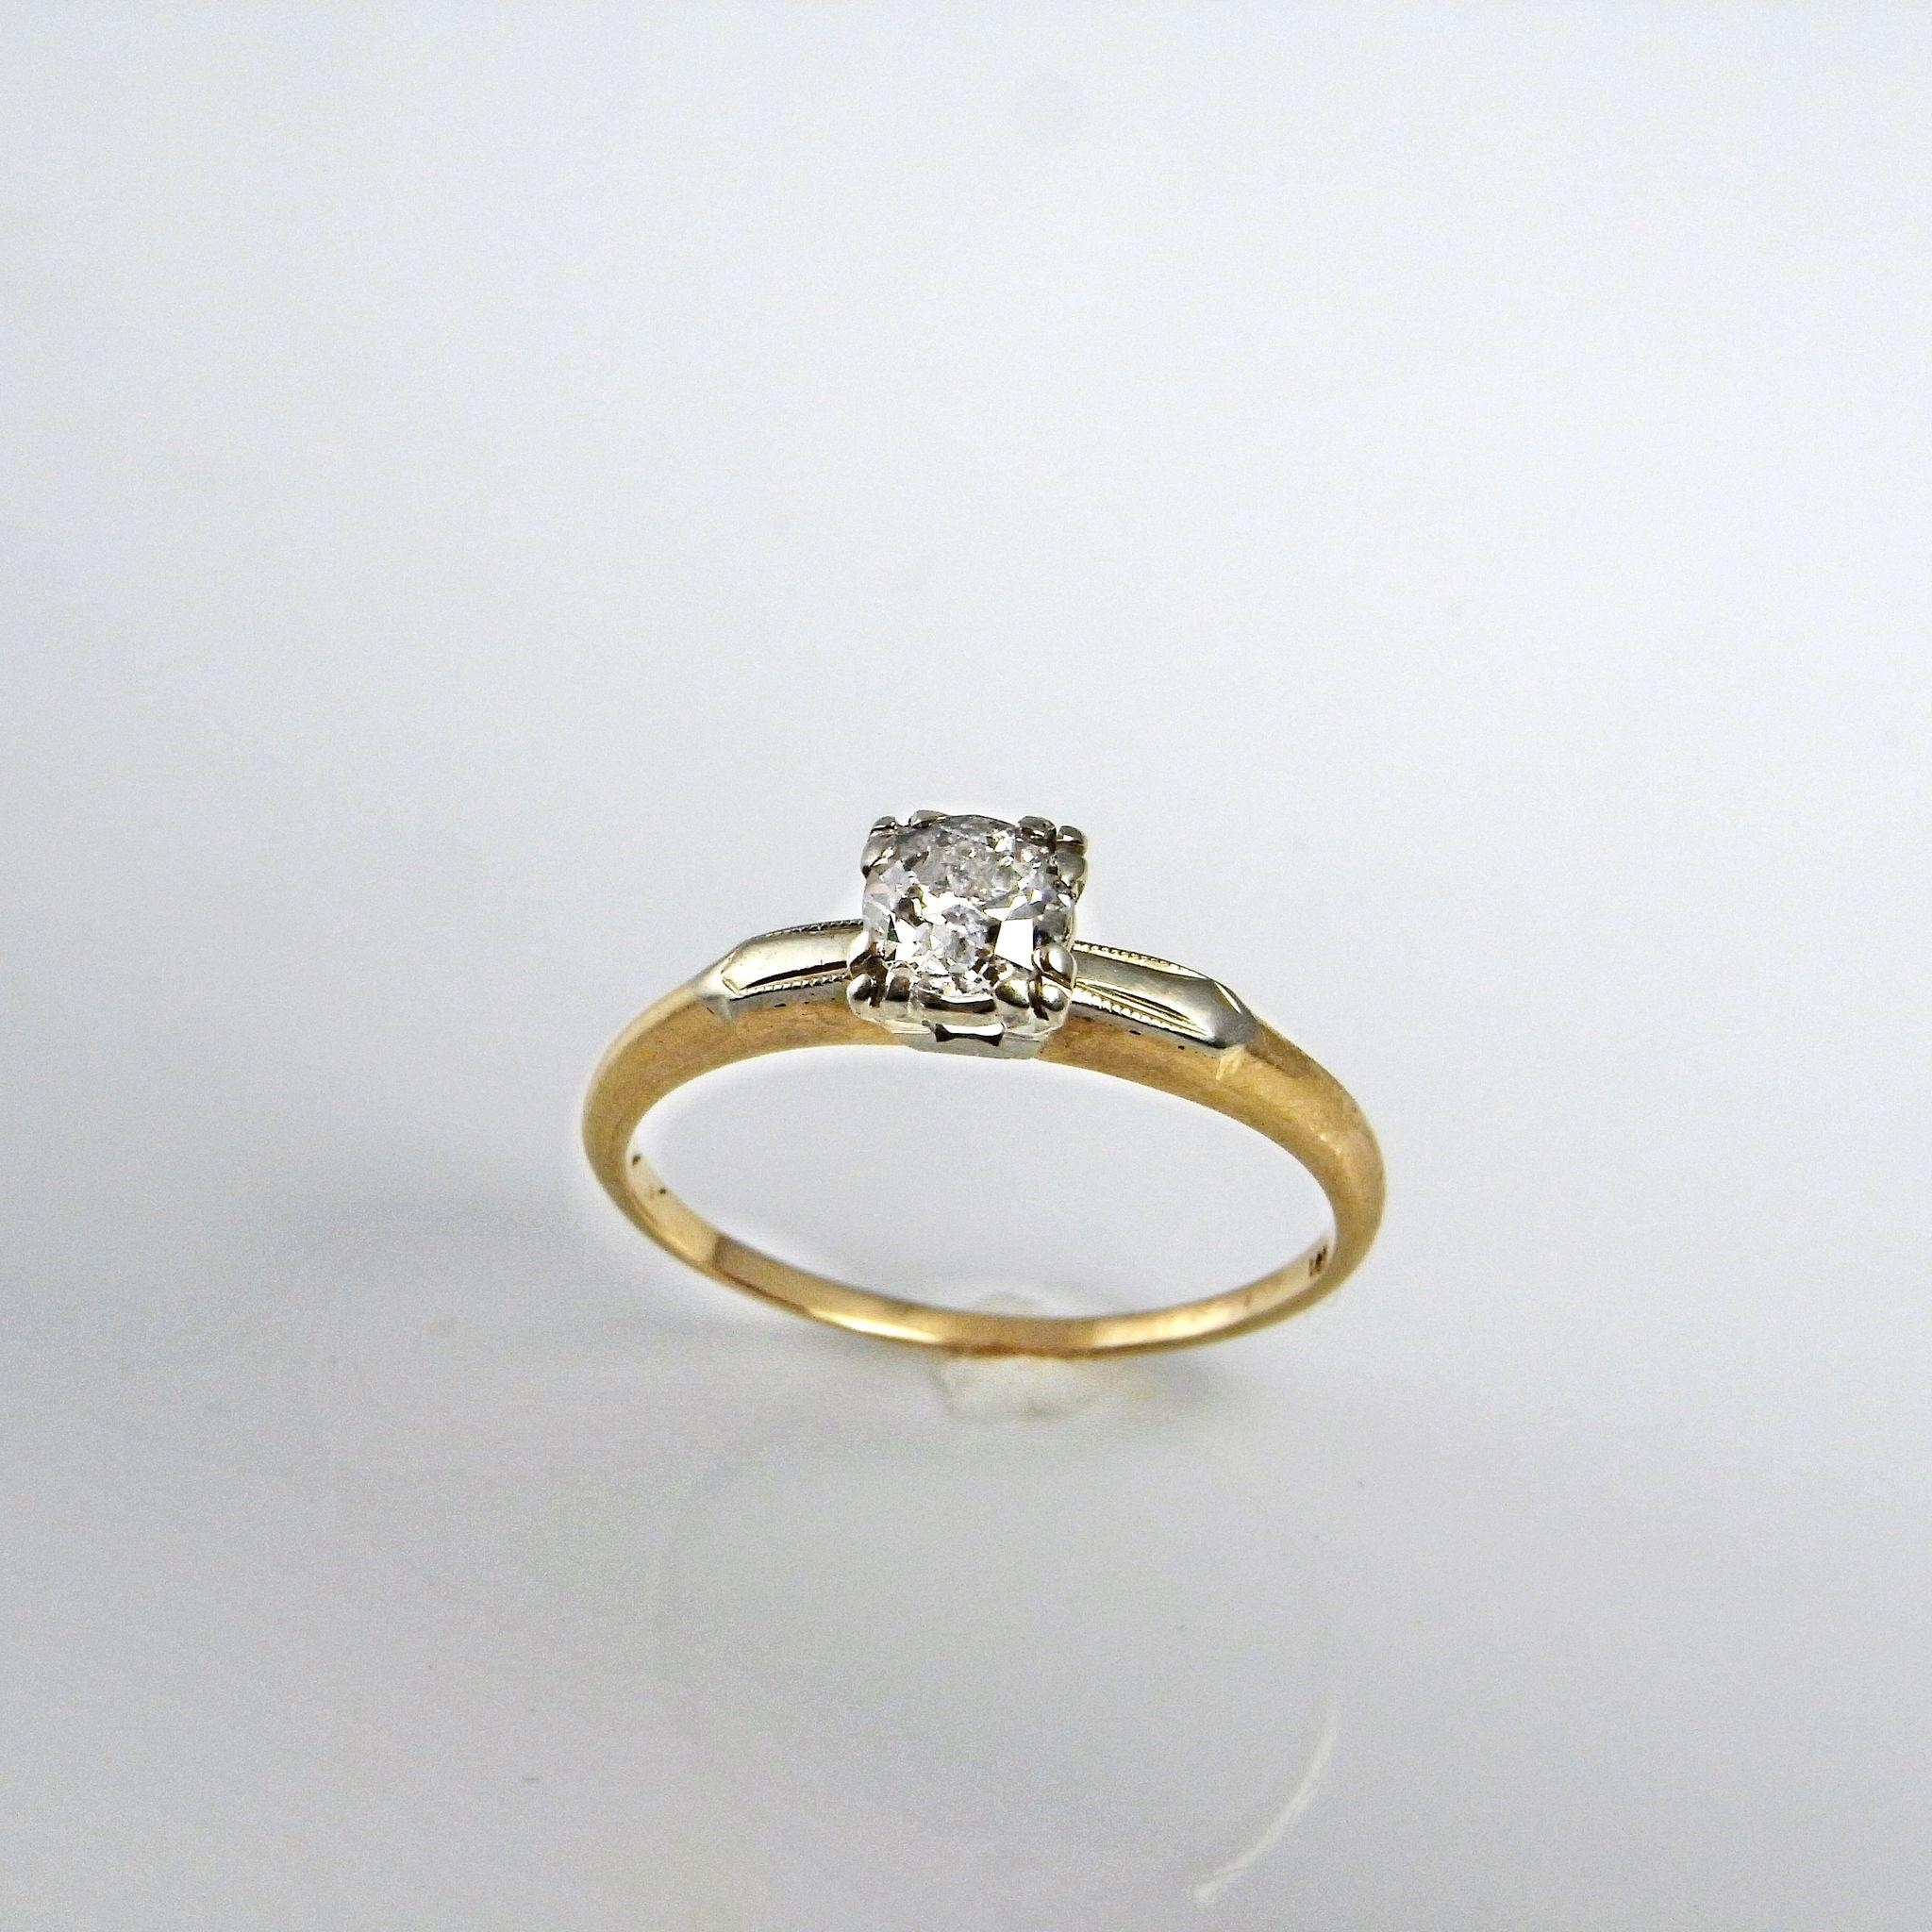 Antique s Engagement Ring Estate Jewelry vintage wedding rings Roll over Large image to magnify click Large image to zoom